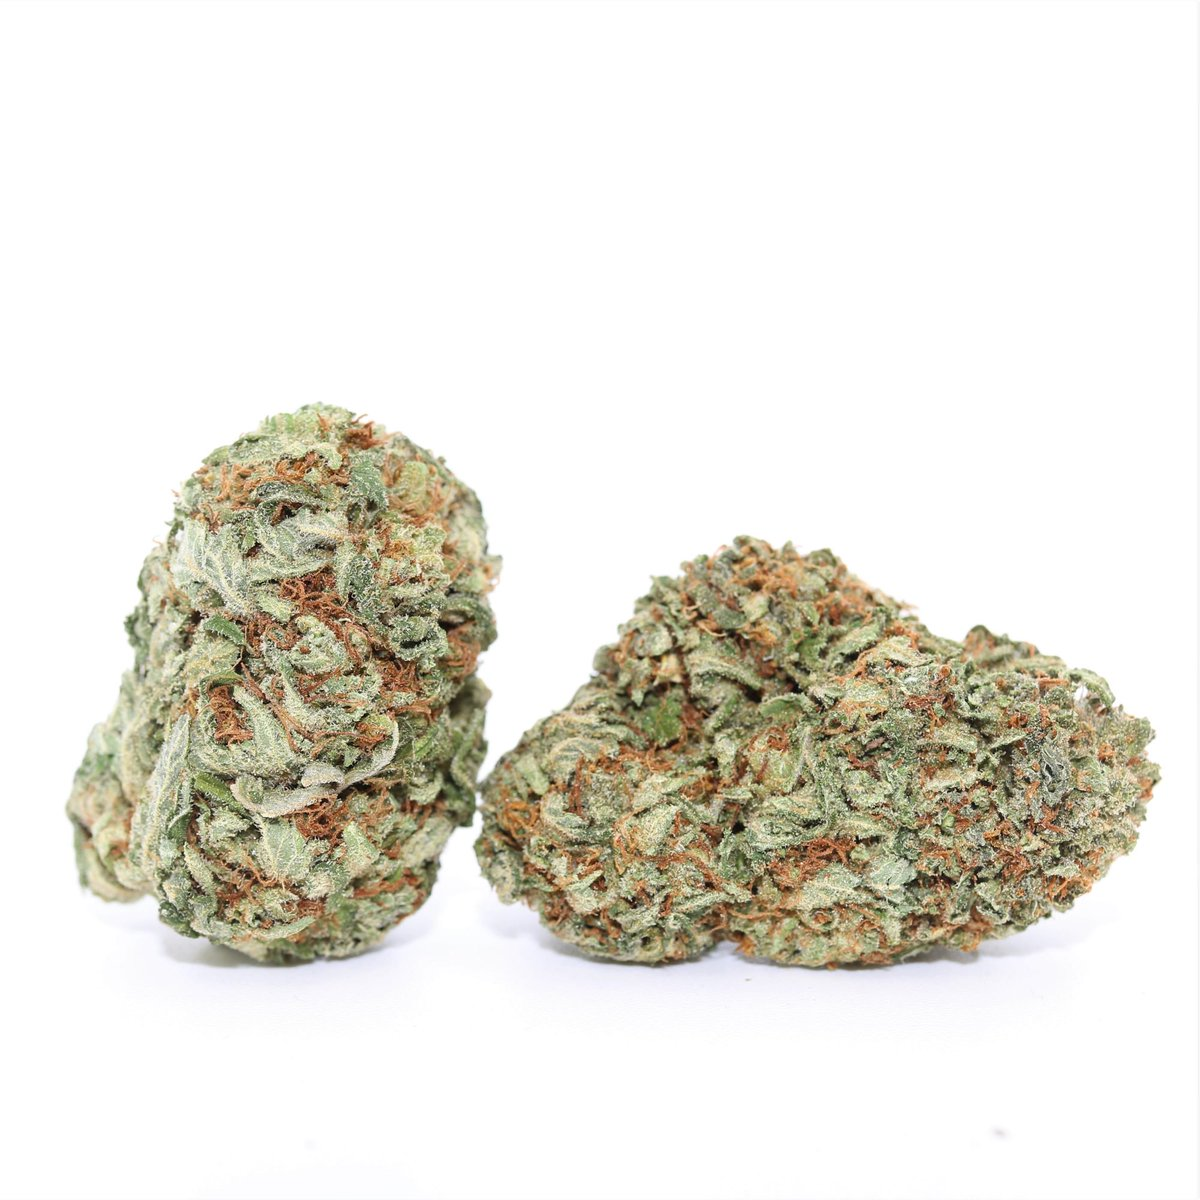 #WeedDeals is back for another wonderful #WeedCrushWednesday this time we bring you the high flying Scout Master 🔭 Best choice to help get higher then the clouds! ☁️ #THC #marijuananews #CannabisCommunity #StonerFam #weedlife #WeedLover #maryjane #marijuana #Hybrid #Sativa #CBD